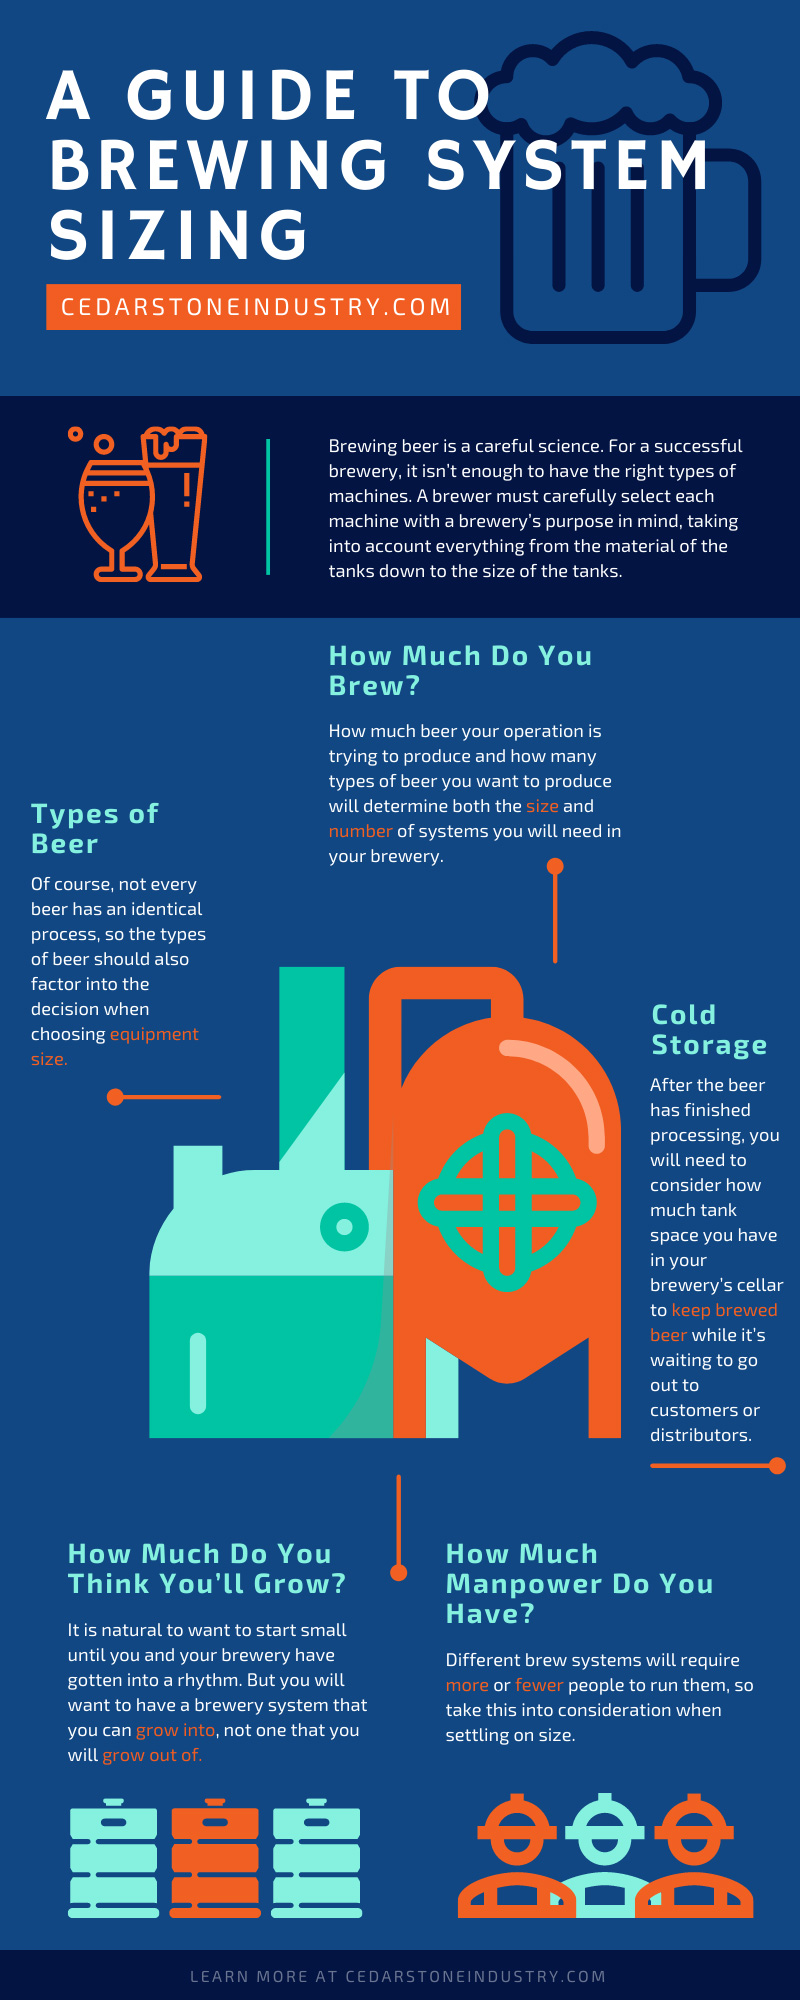 A Guide To Brewing System Sizing infographic